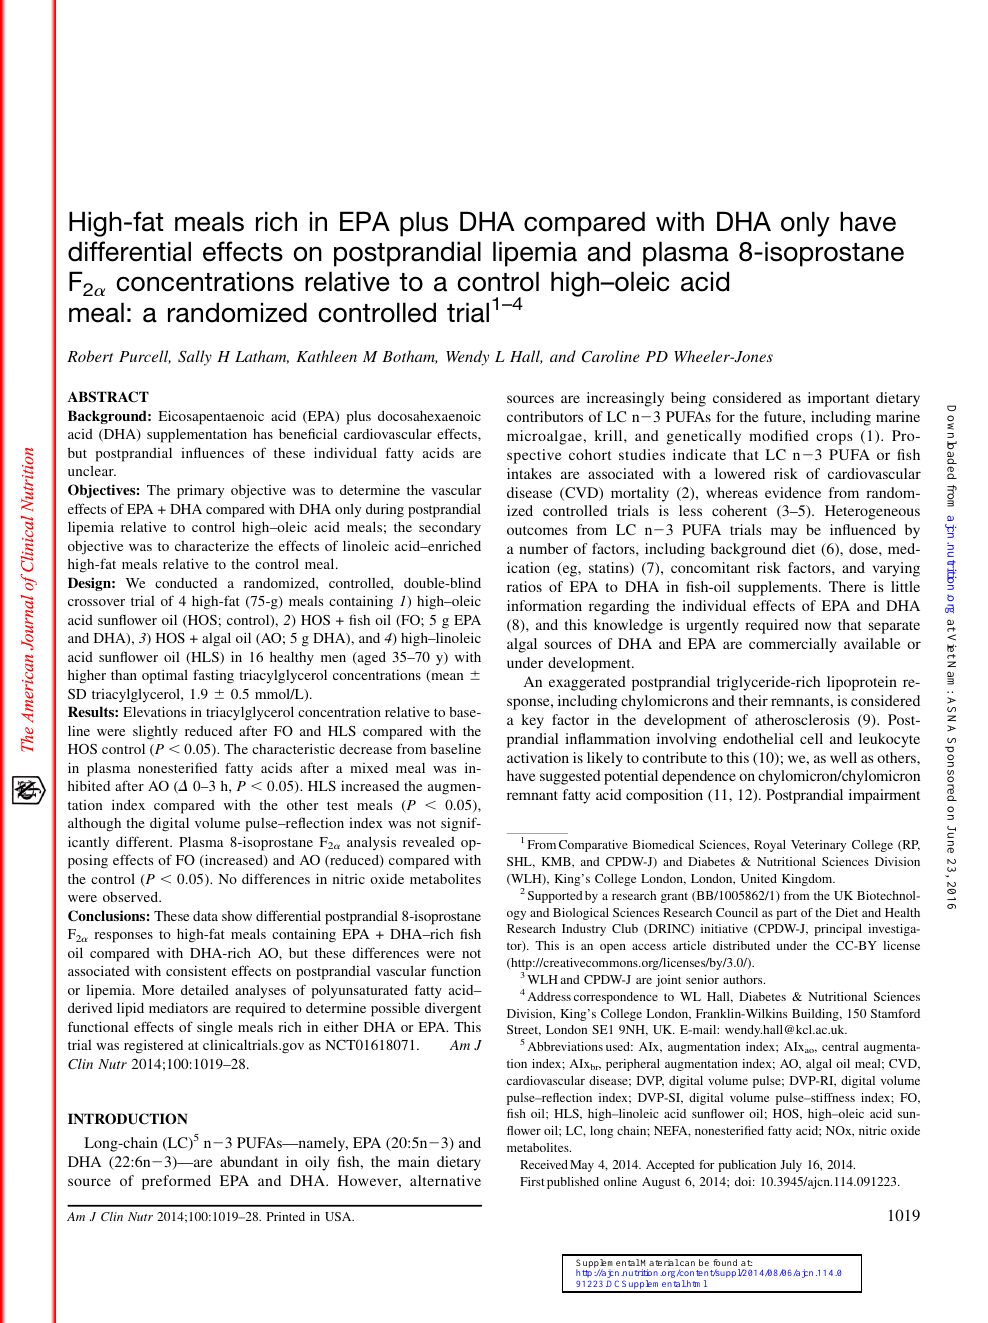 High Fat Meals Rich In Epa Plus Dha Compared With Dha Only Have Differential Effects On Postprandial Lipemia And Plasma 8 Isoprostane F2 Concentrations Relative To A Control High Oleic Acid Meal A Randomized Controlled